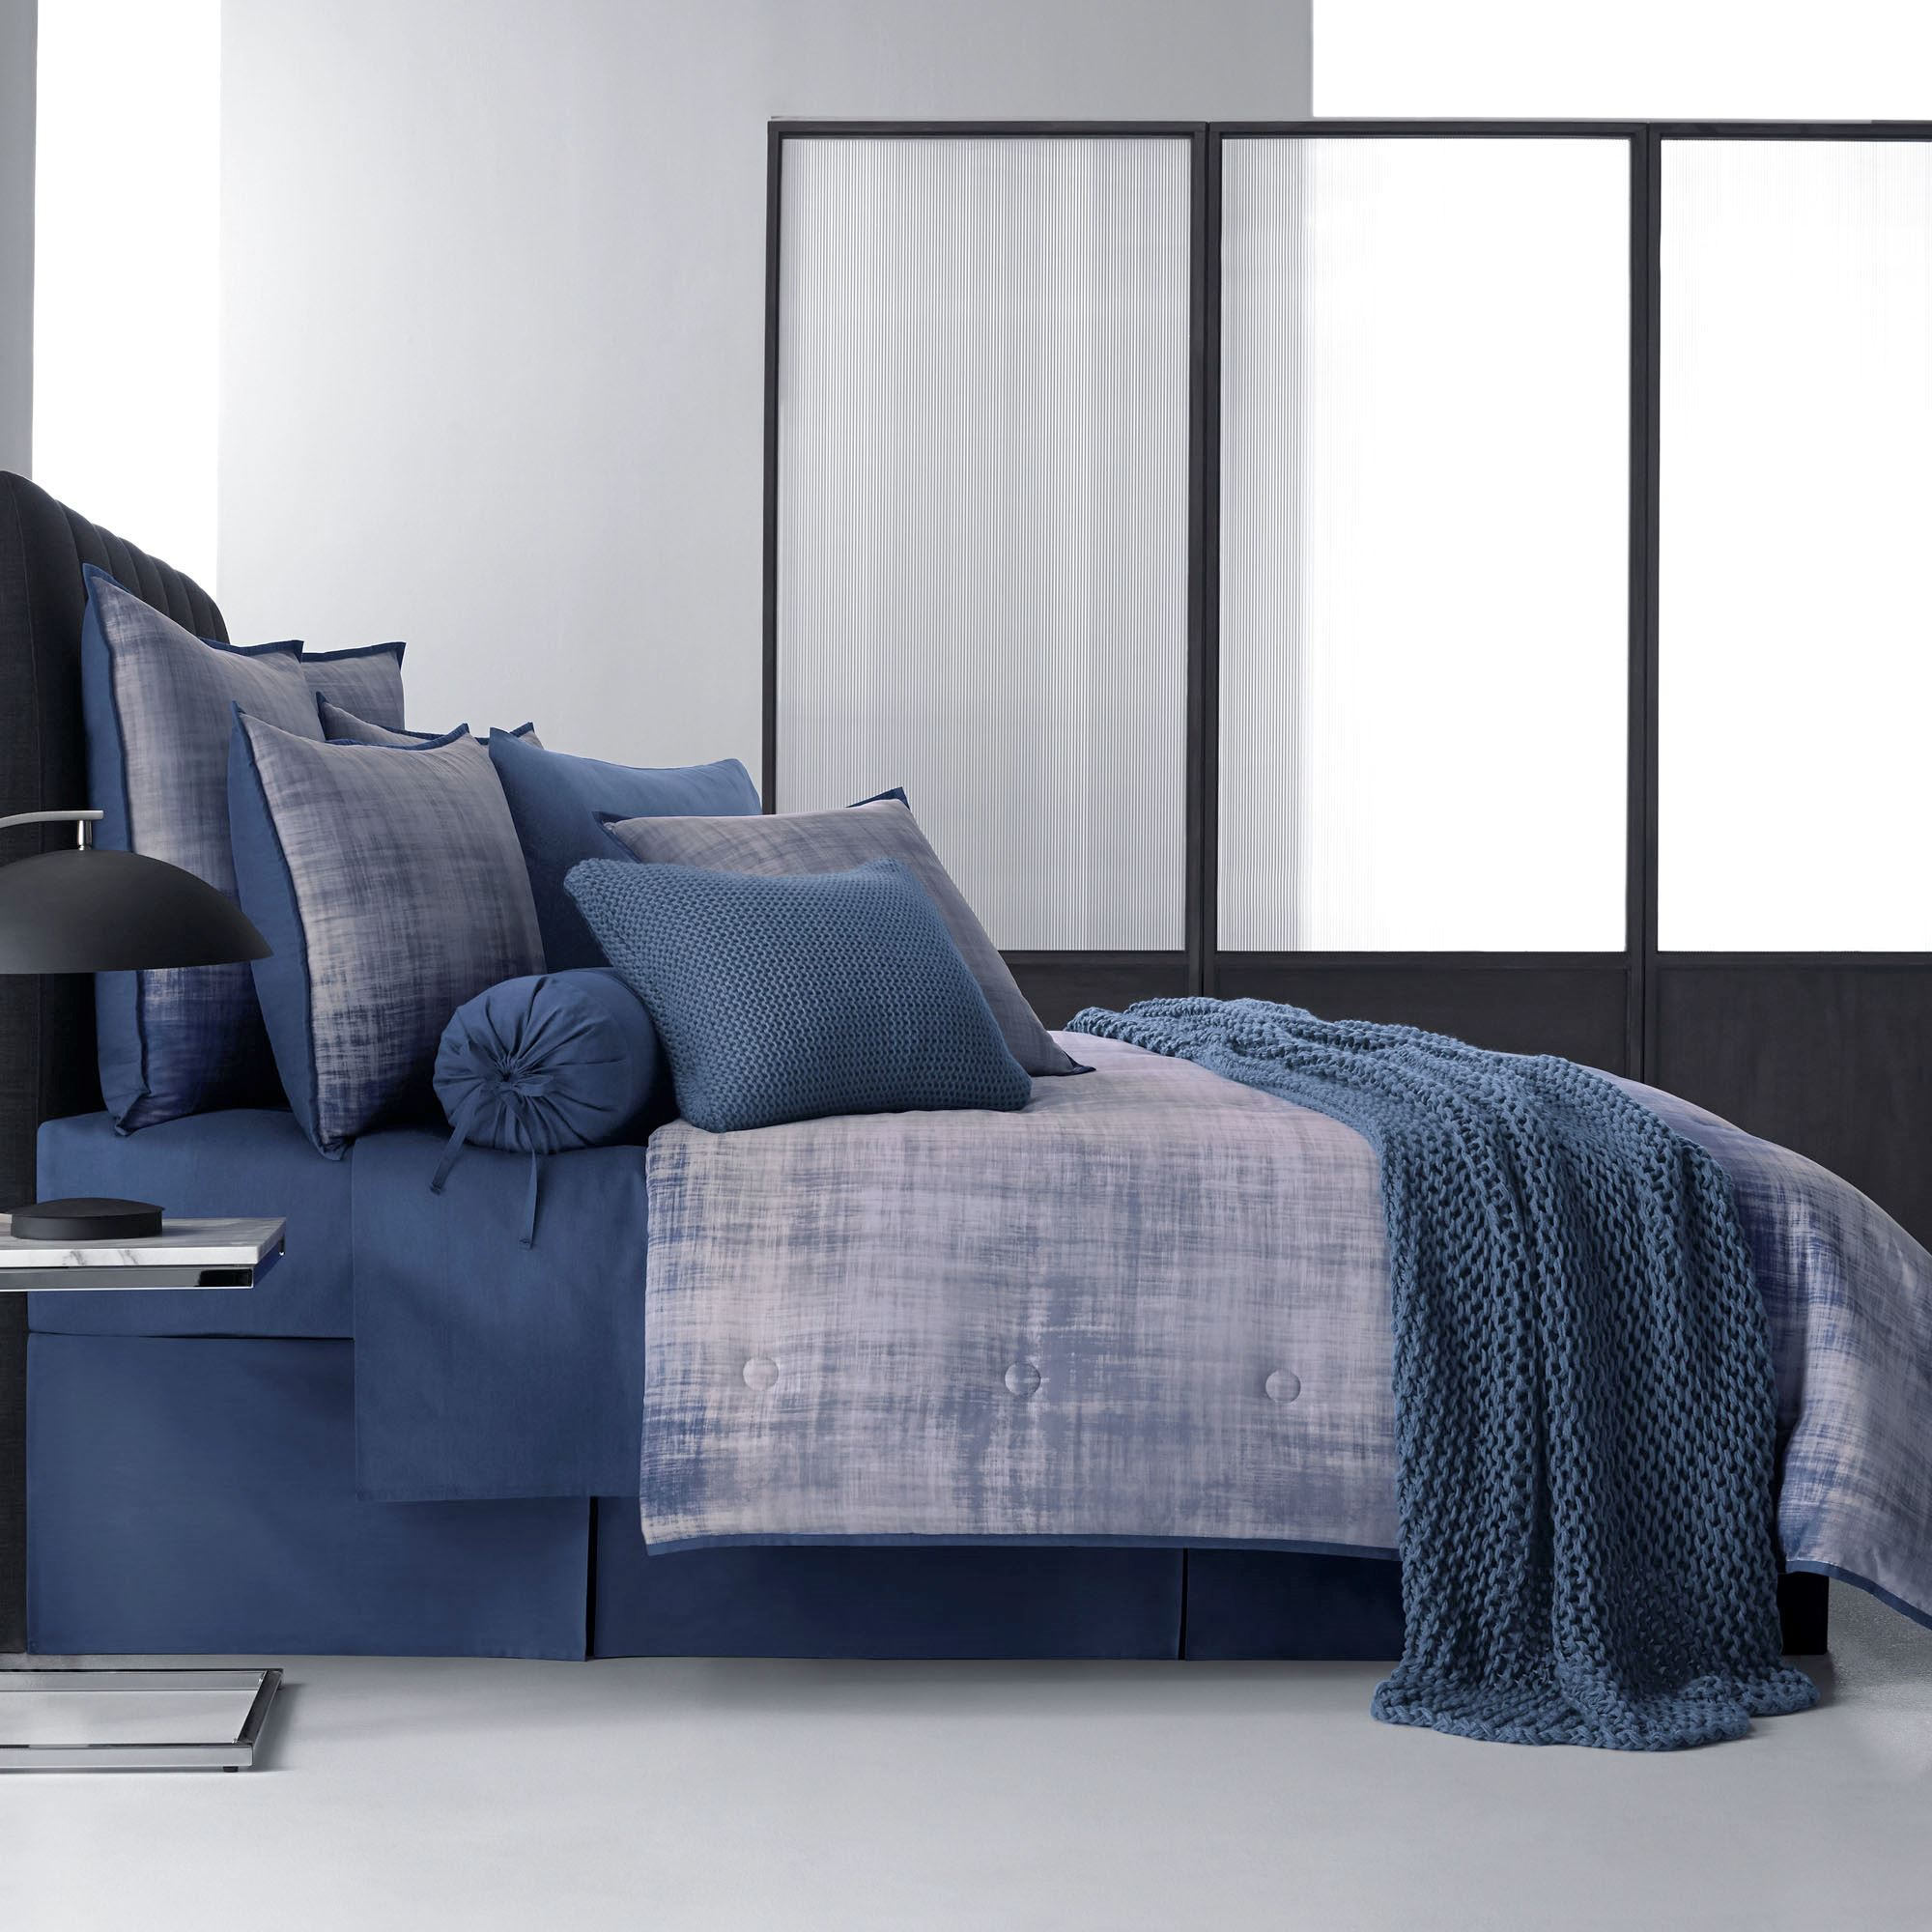 ombre comforter house product by blue cfm piece hayneedle manchester master set harbor